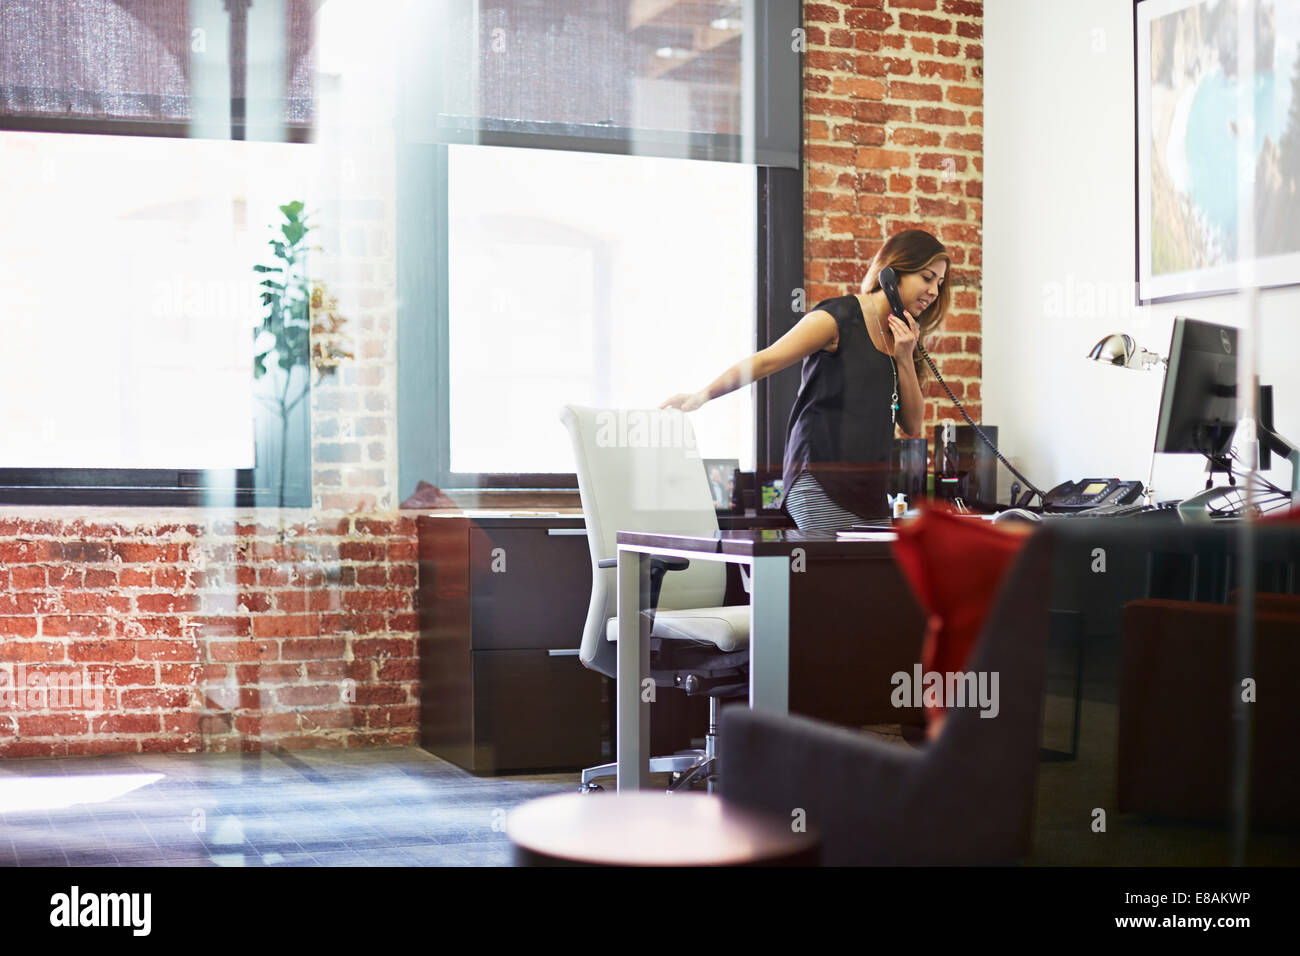 Young woman using telephone in office - Stock Image